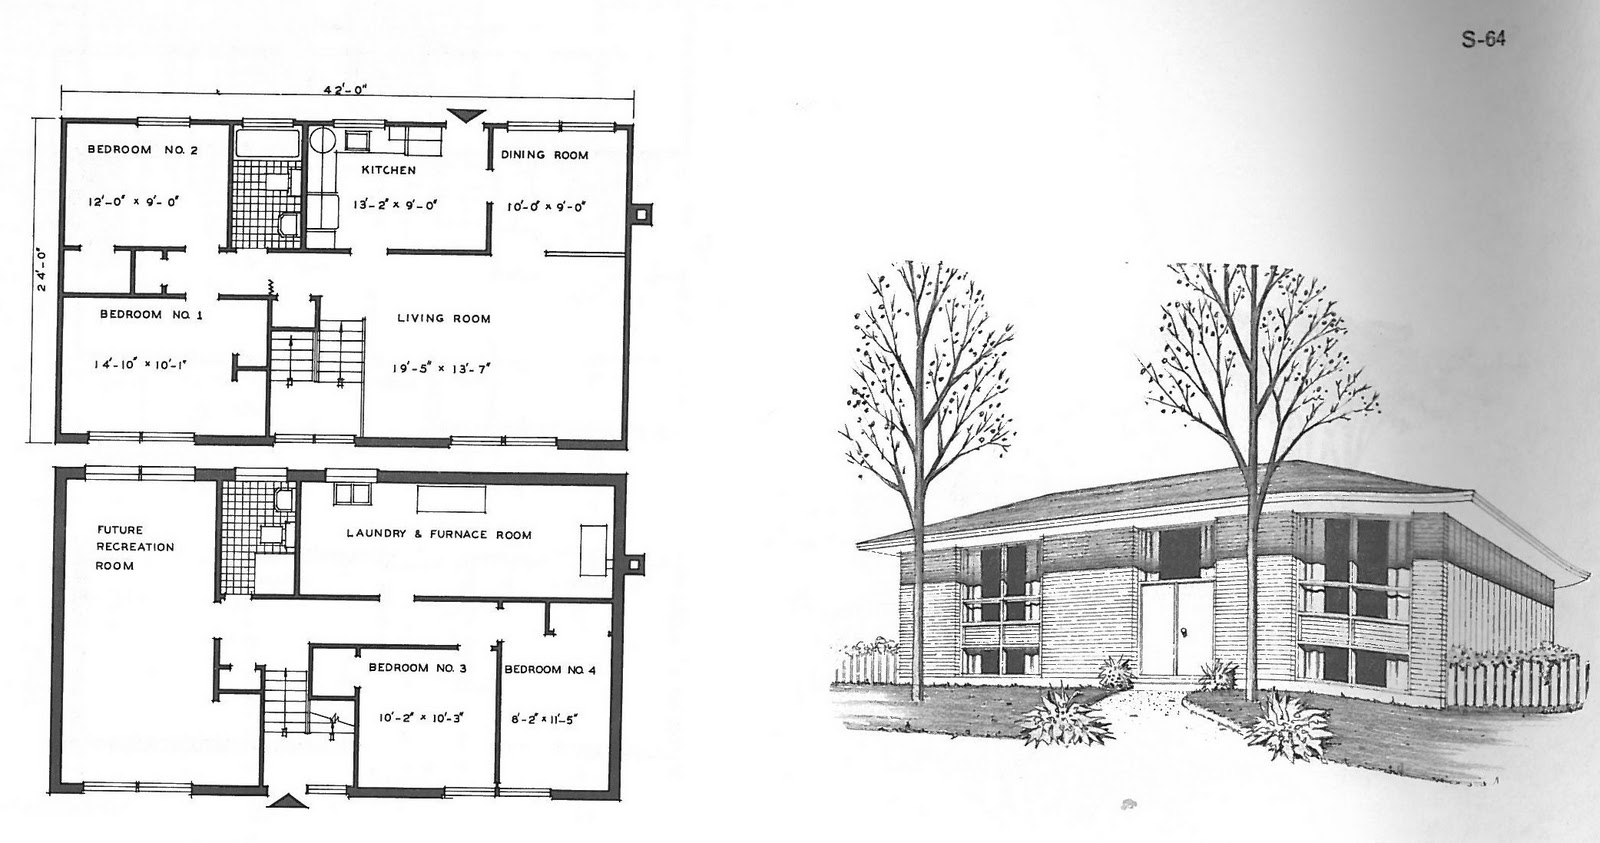 Mid century modern and 1970s era ottawa campeau best sellers 1961 the s 64 plan is identical but does not have a garage instead space for a recreation room is located on the lower level something that is missing from malvernweather Images